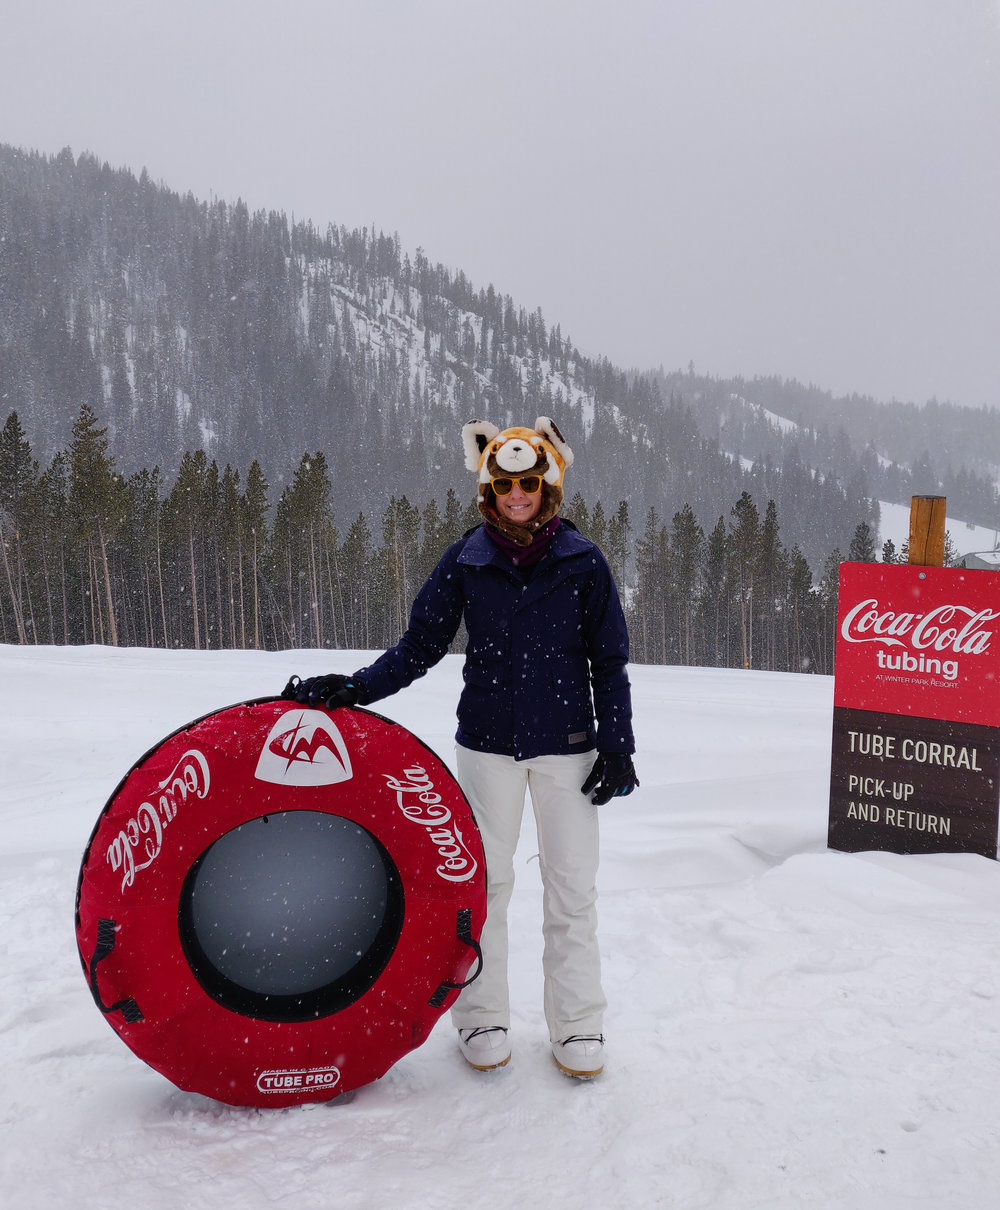 Coca-Cola Tube Park - Winter Park, Colorado